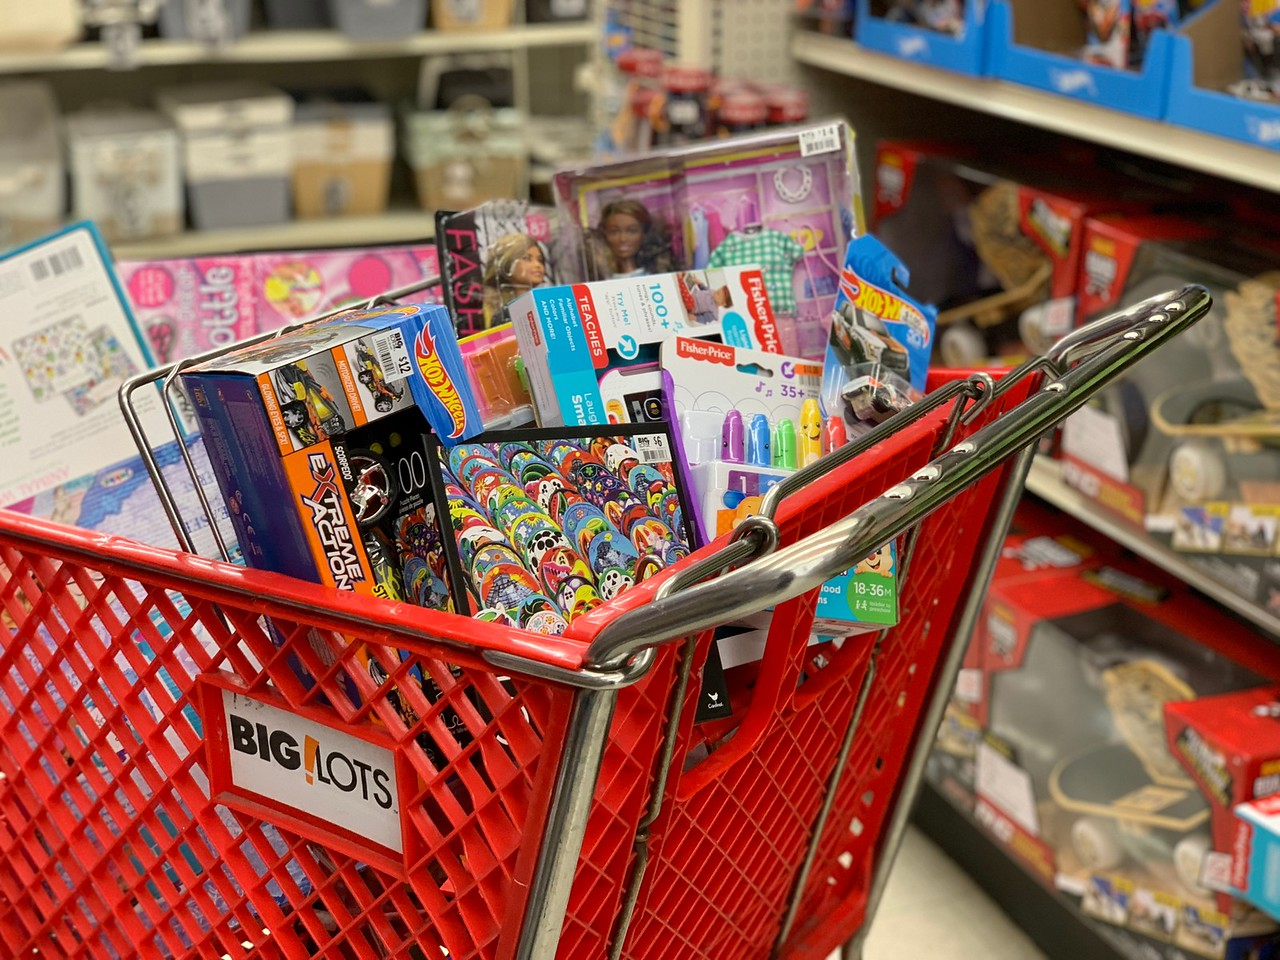 best big lots black friday deals 2018 – cart filled with toys